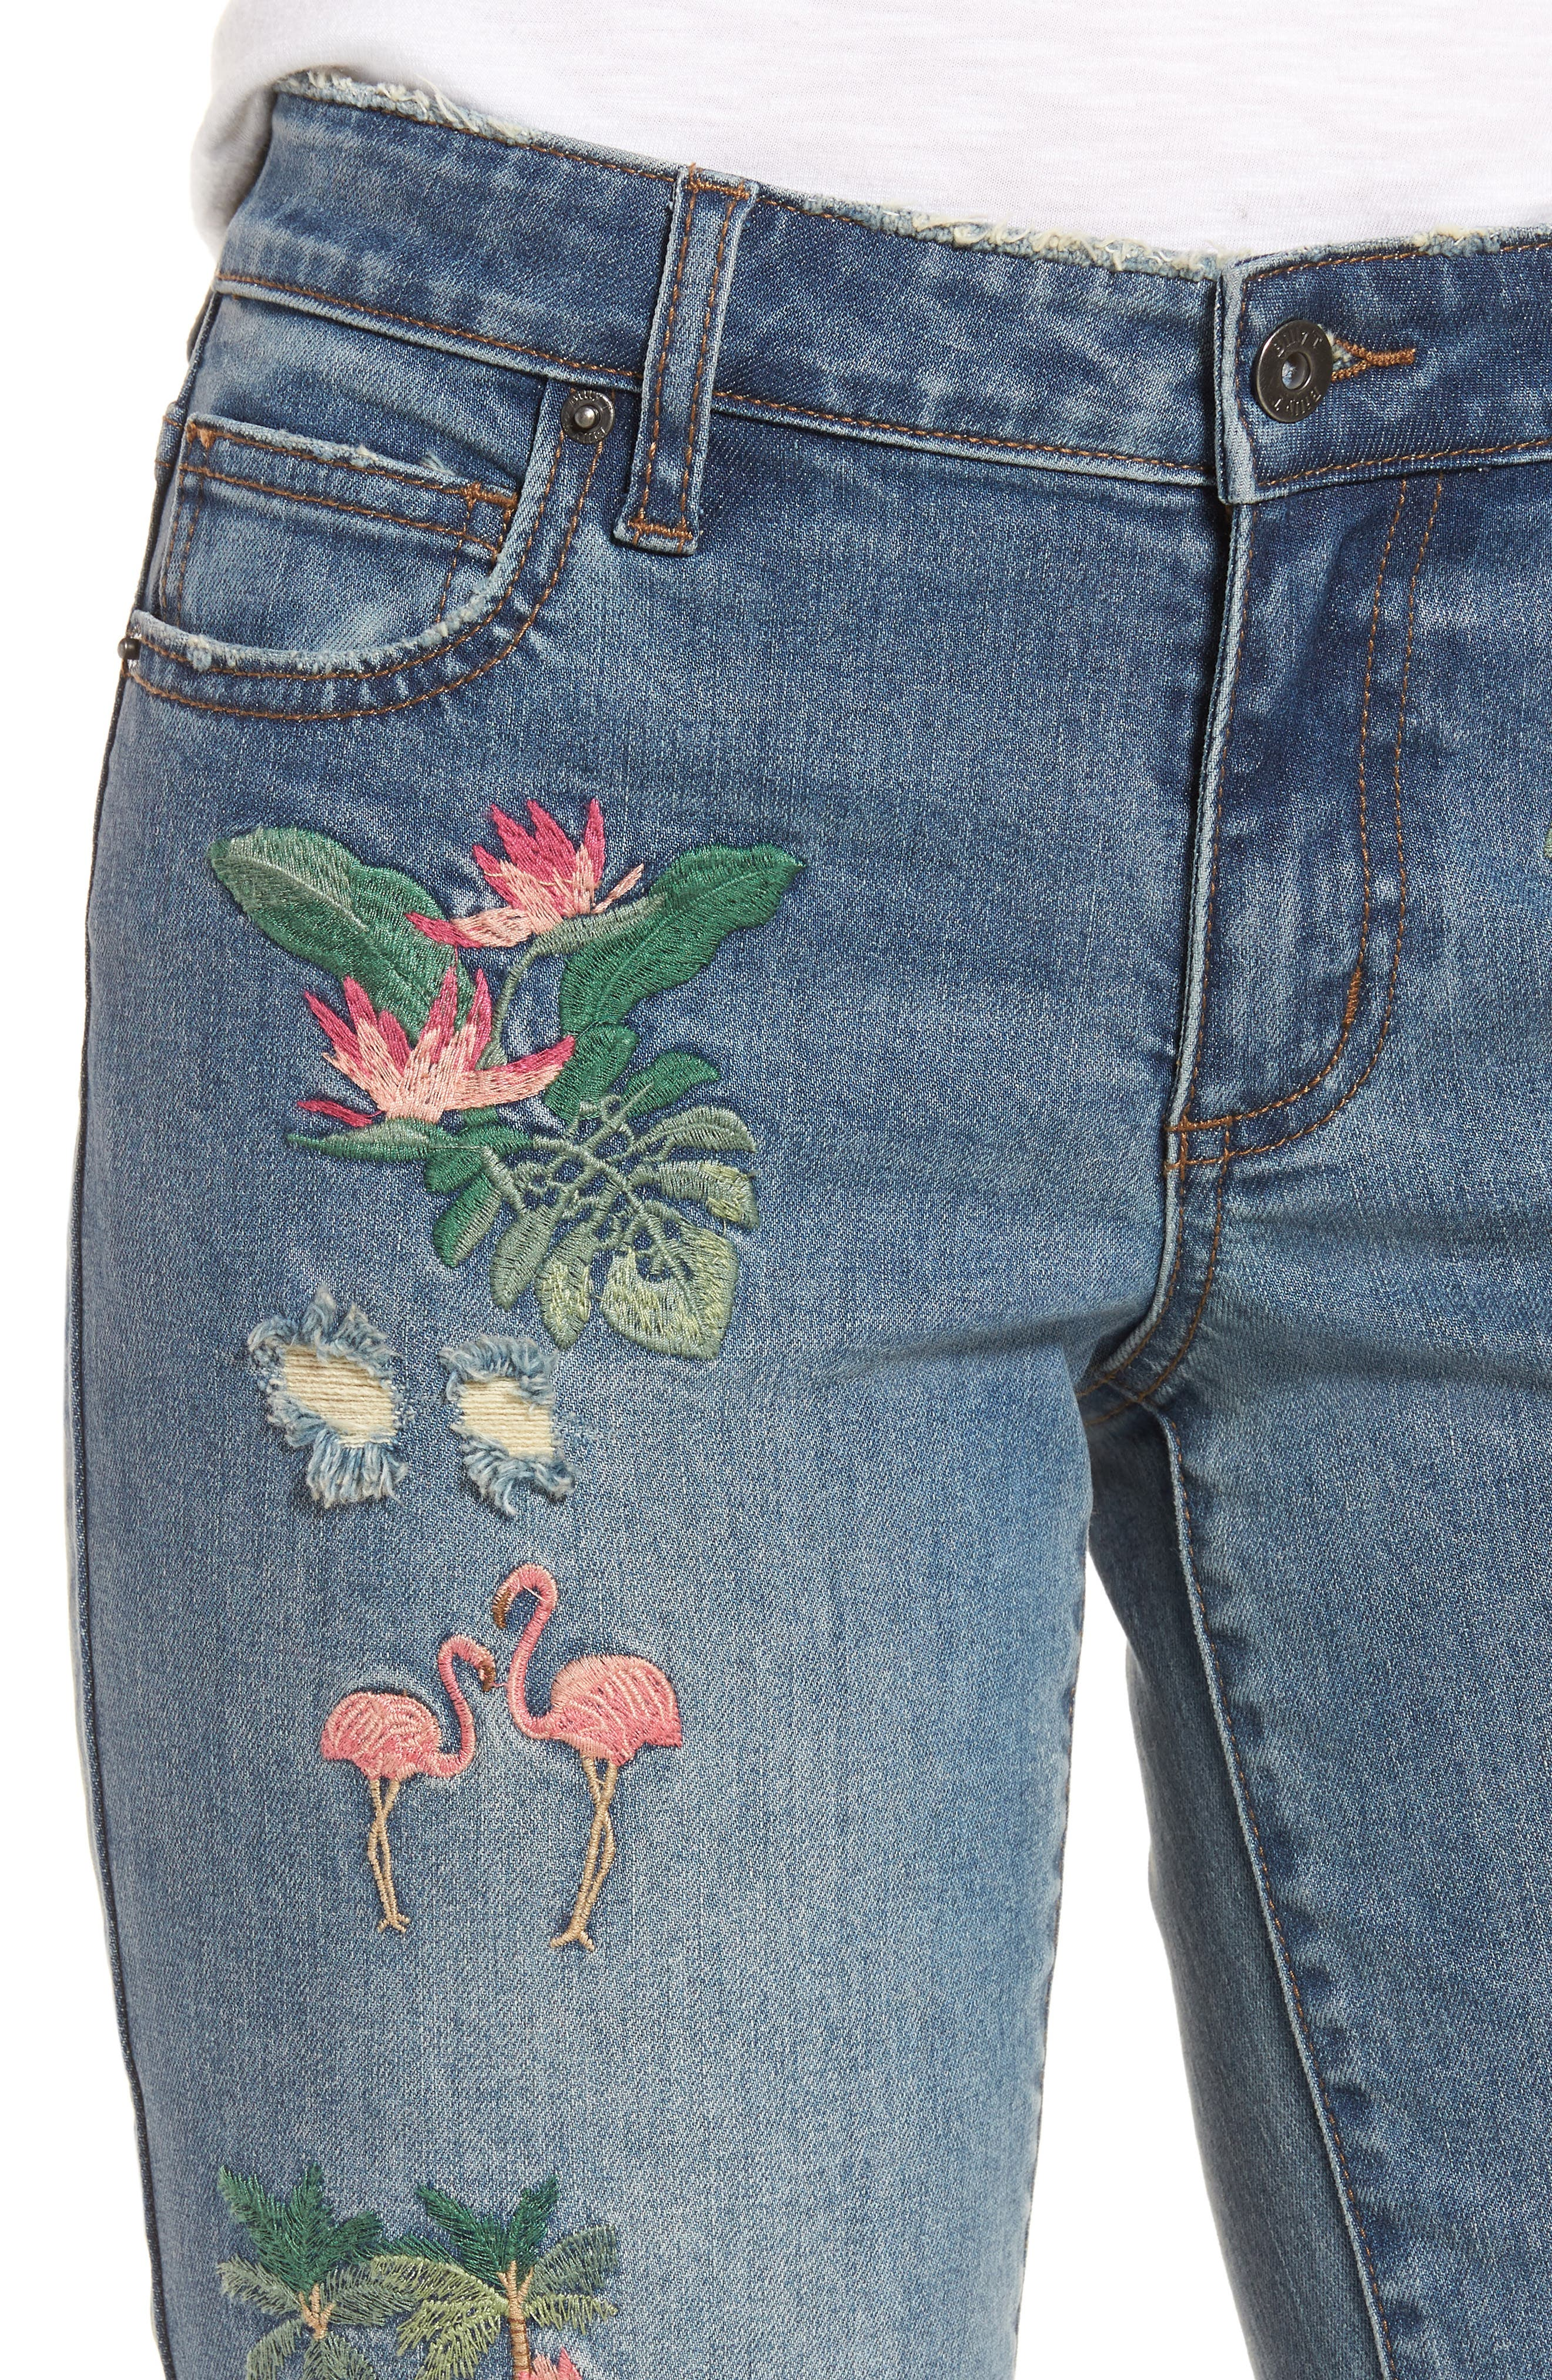 Flamingo Embroidery Jeans,                             Alternate thumbnail 4, color,                             Blue W/ Embroider